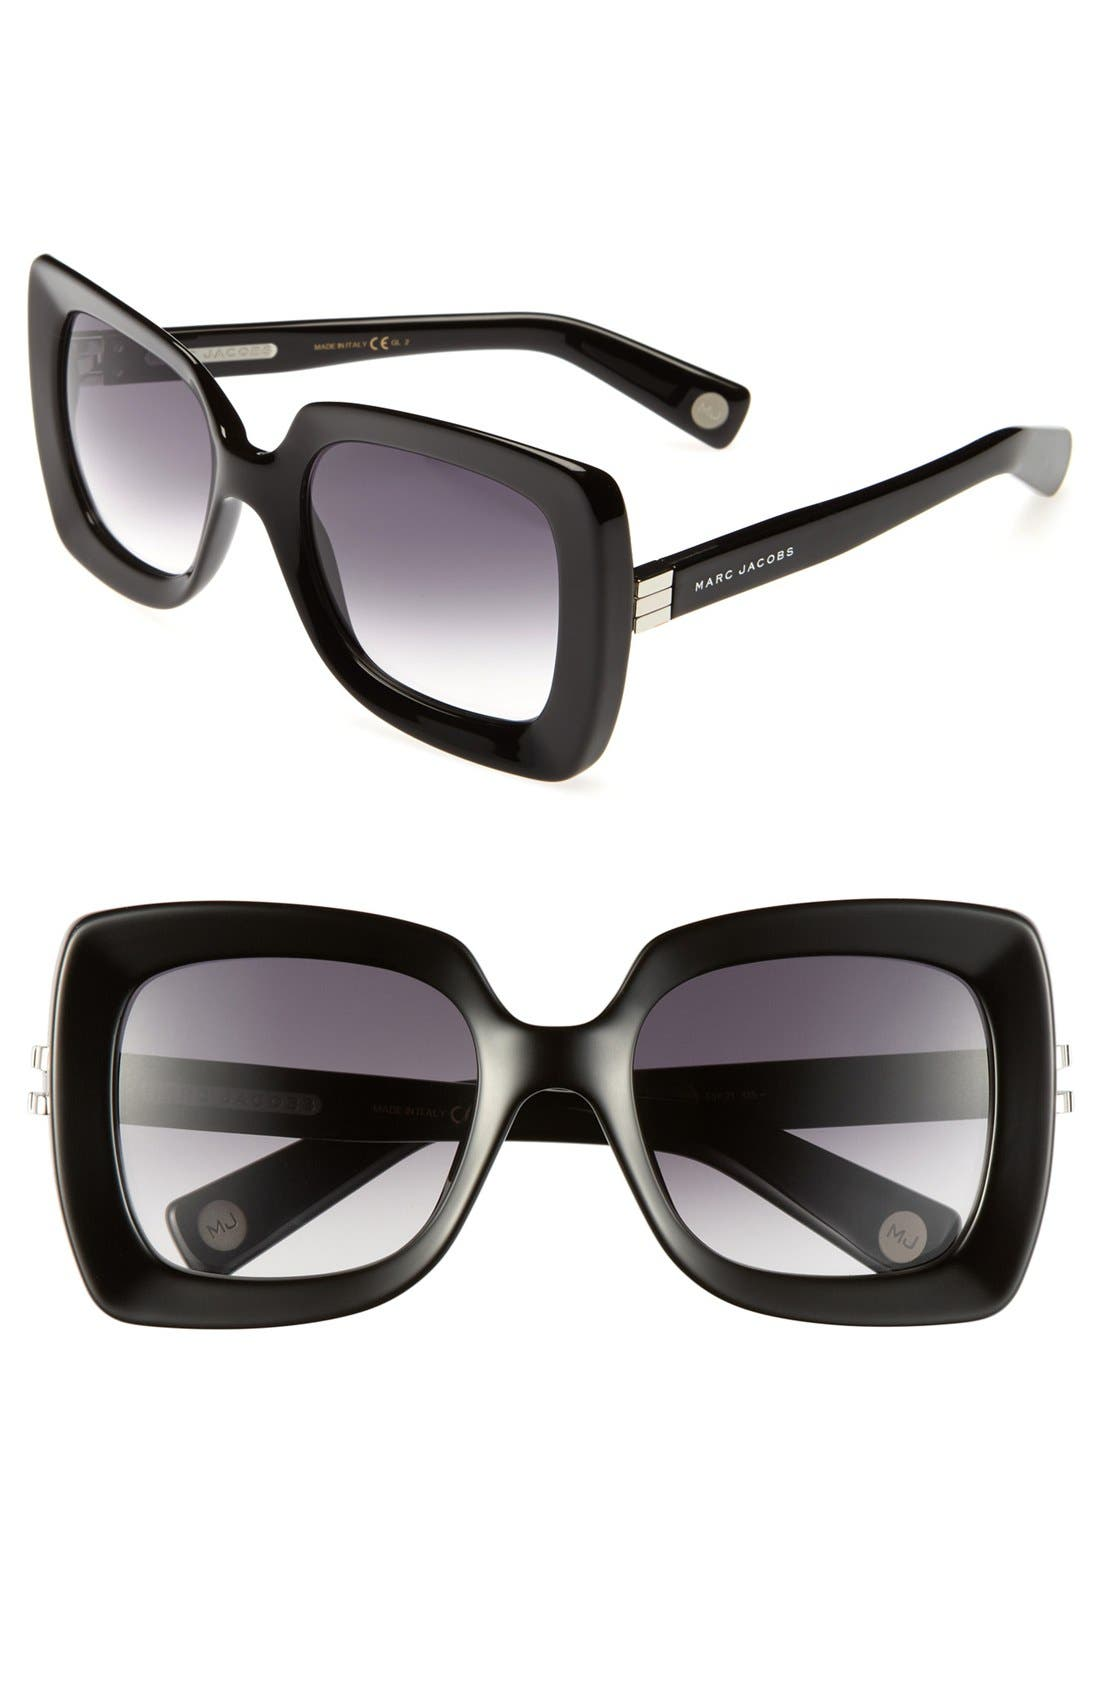 Main Image - MARC JACOBS 53mm Retro Sunglasses